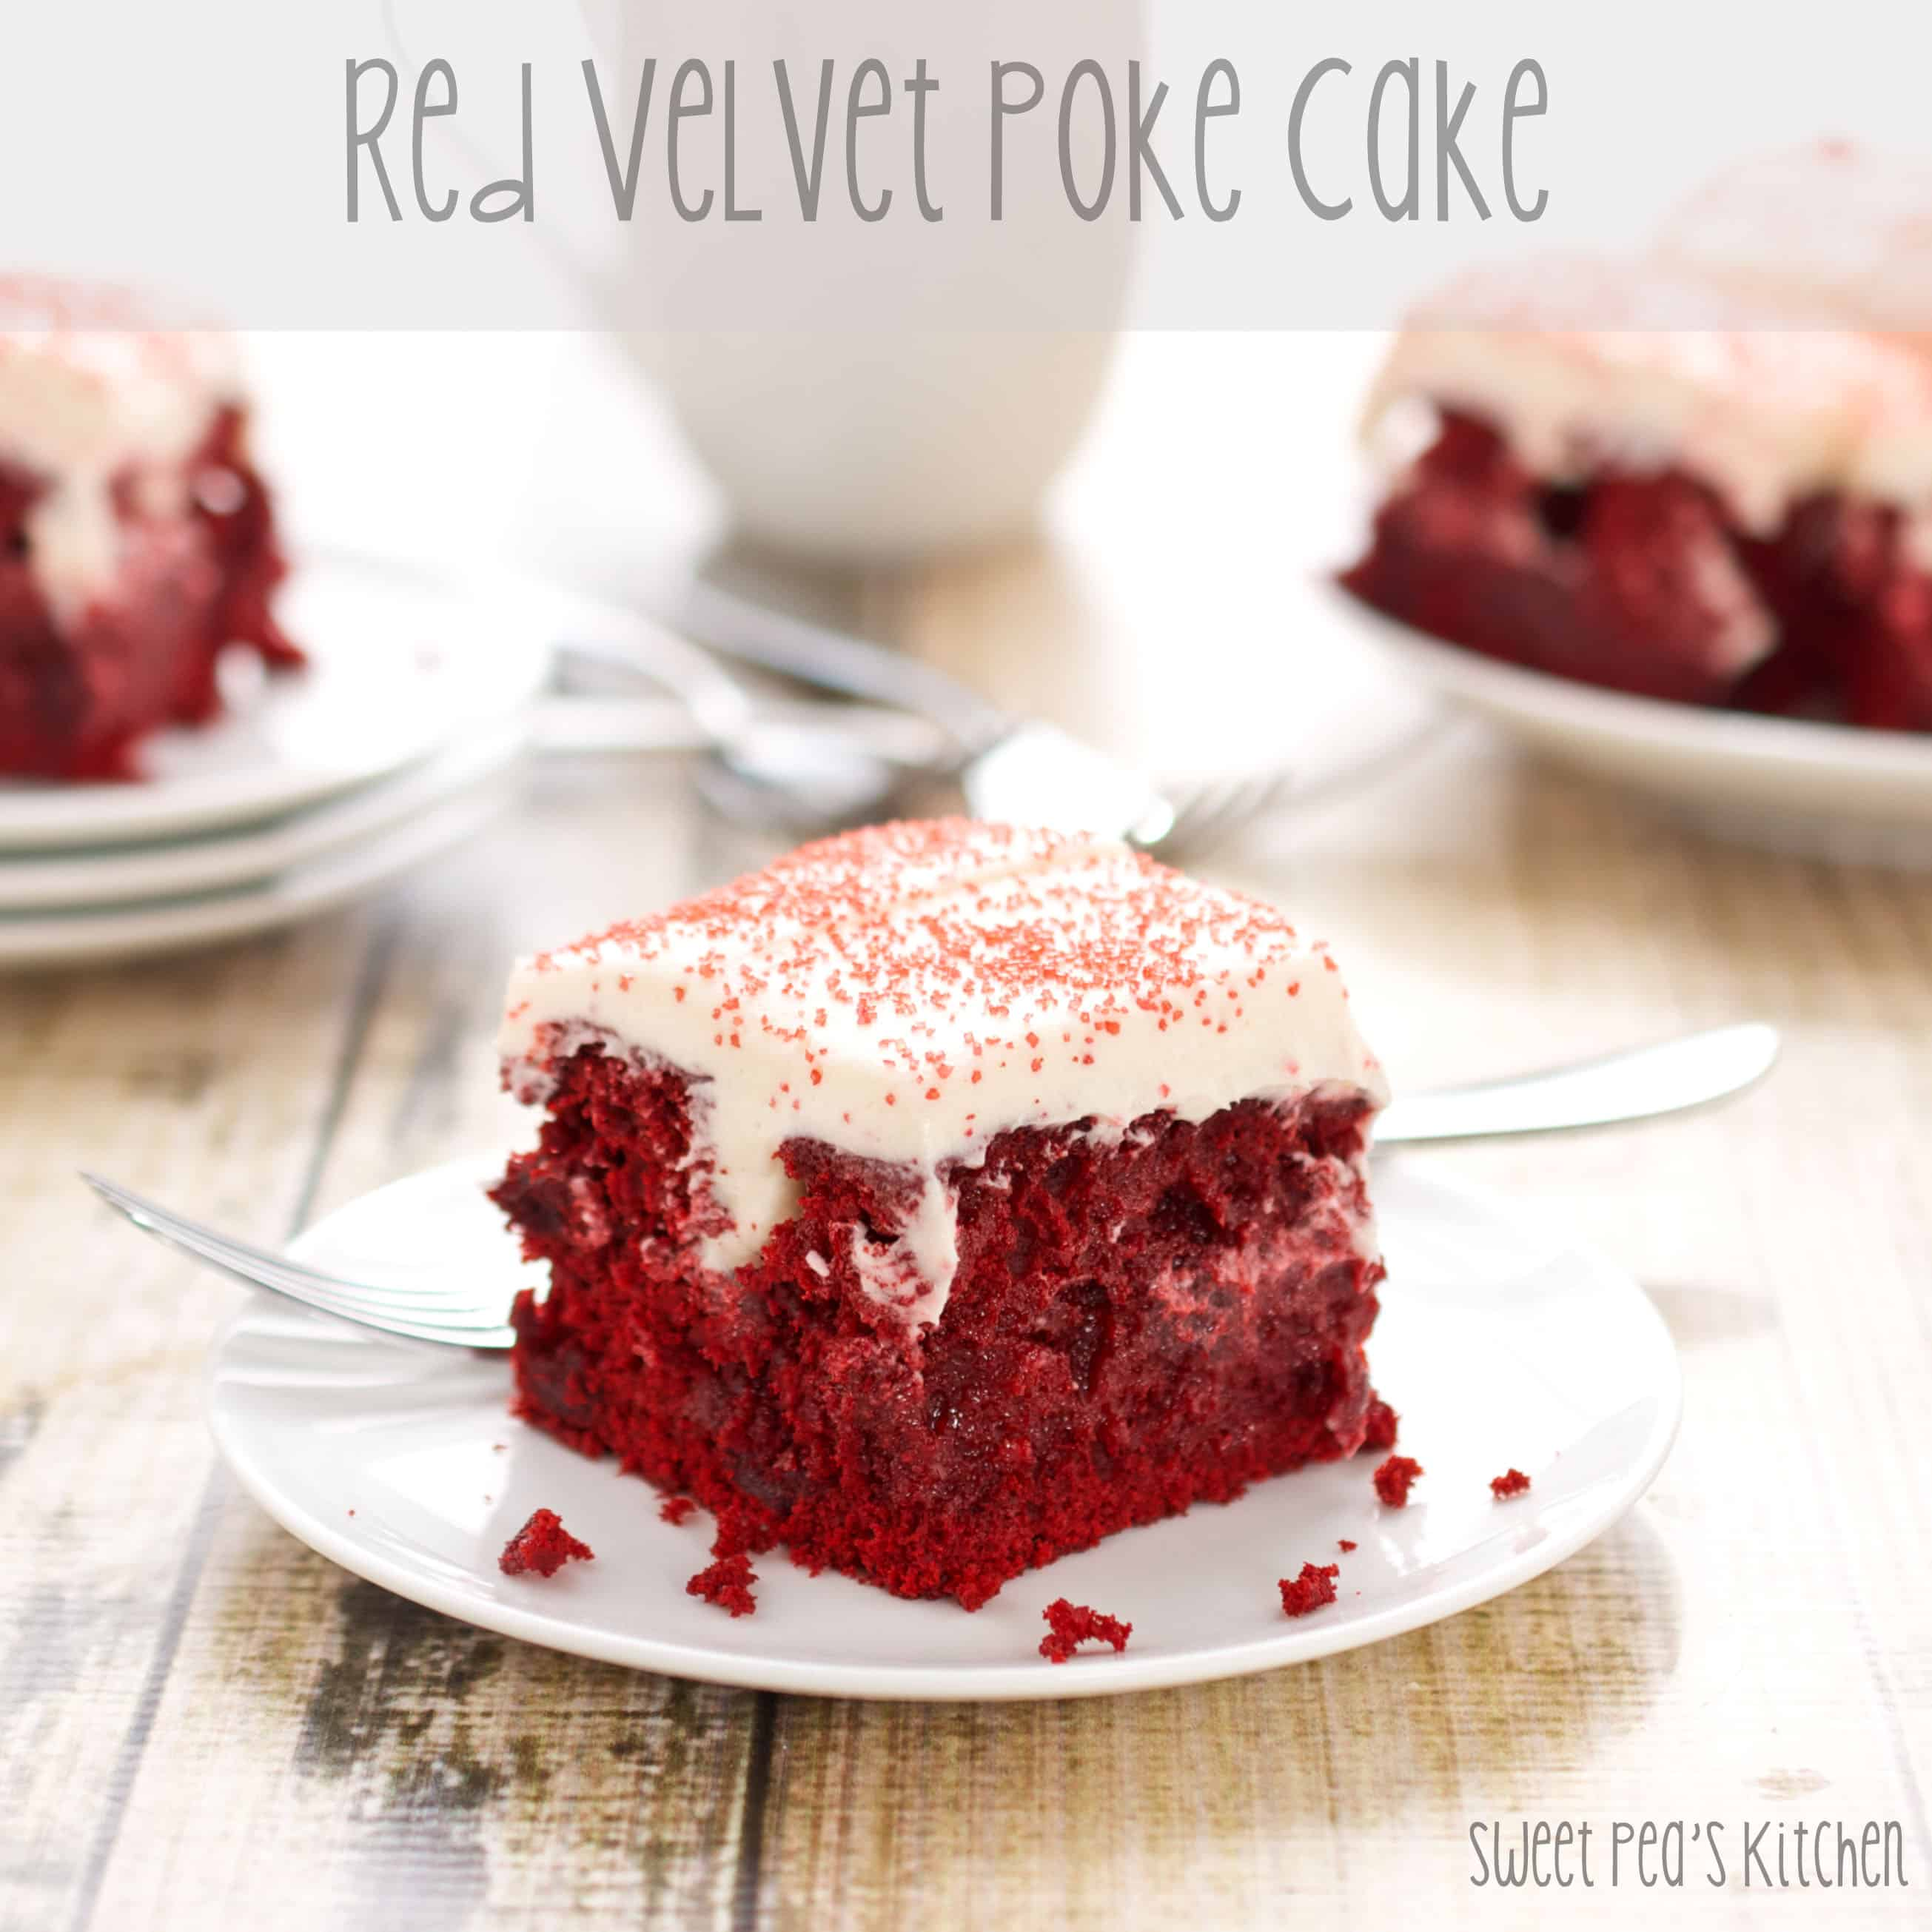 plates with homemade red velvet cake